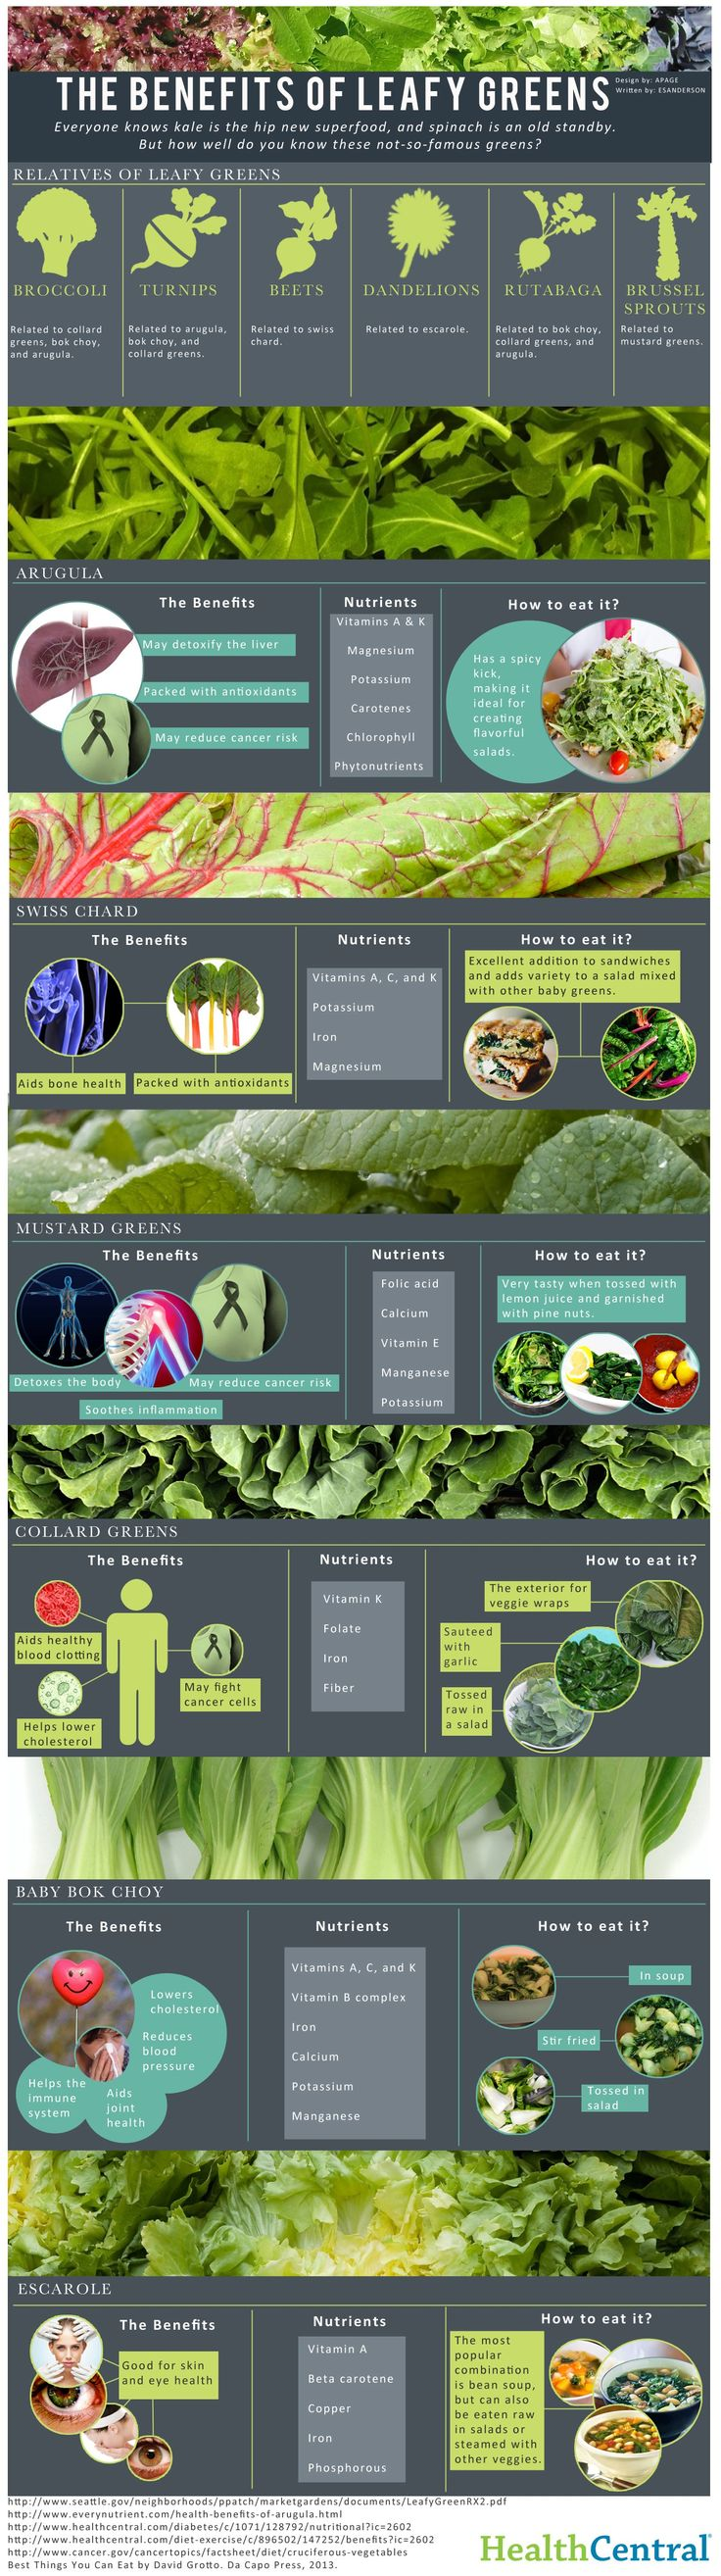 There are many health benefits behind eating nutritious leafy greens. Some of these foods may not be on your regular grocery list, but they taste great and your body will reap the benefits of these nutritious foods.